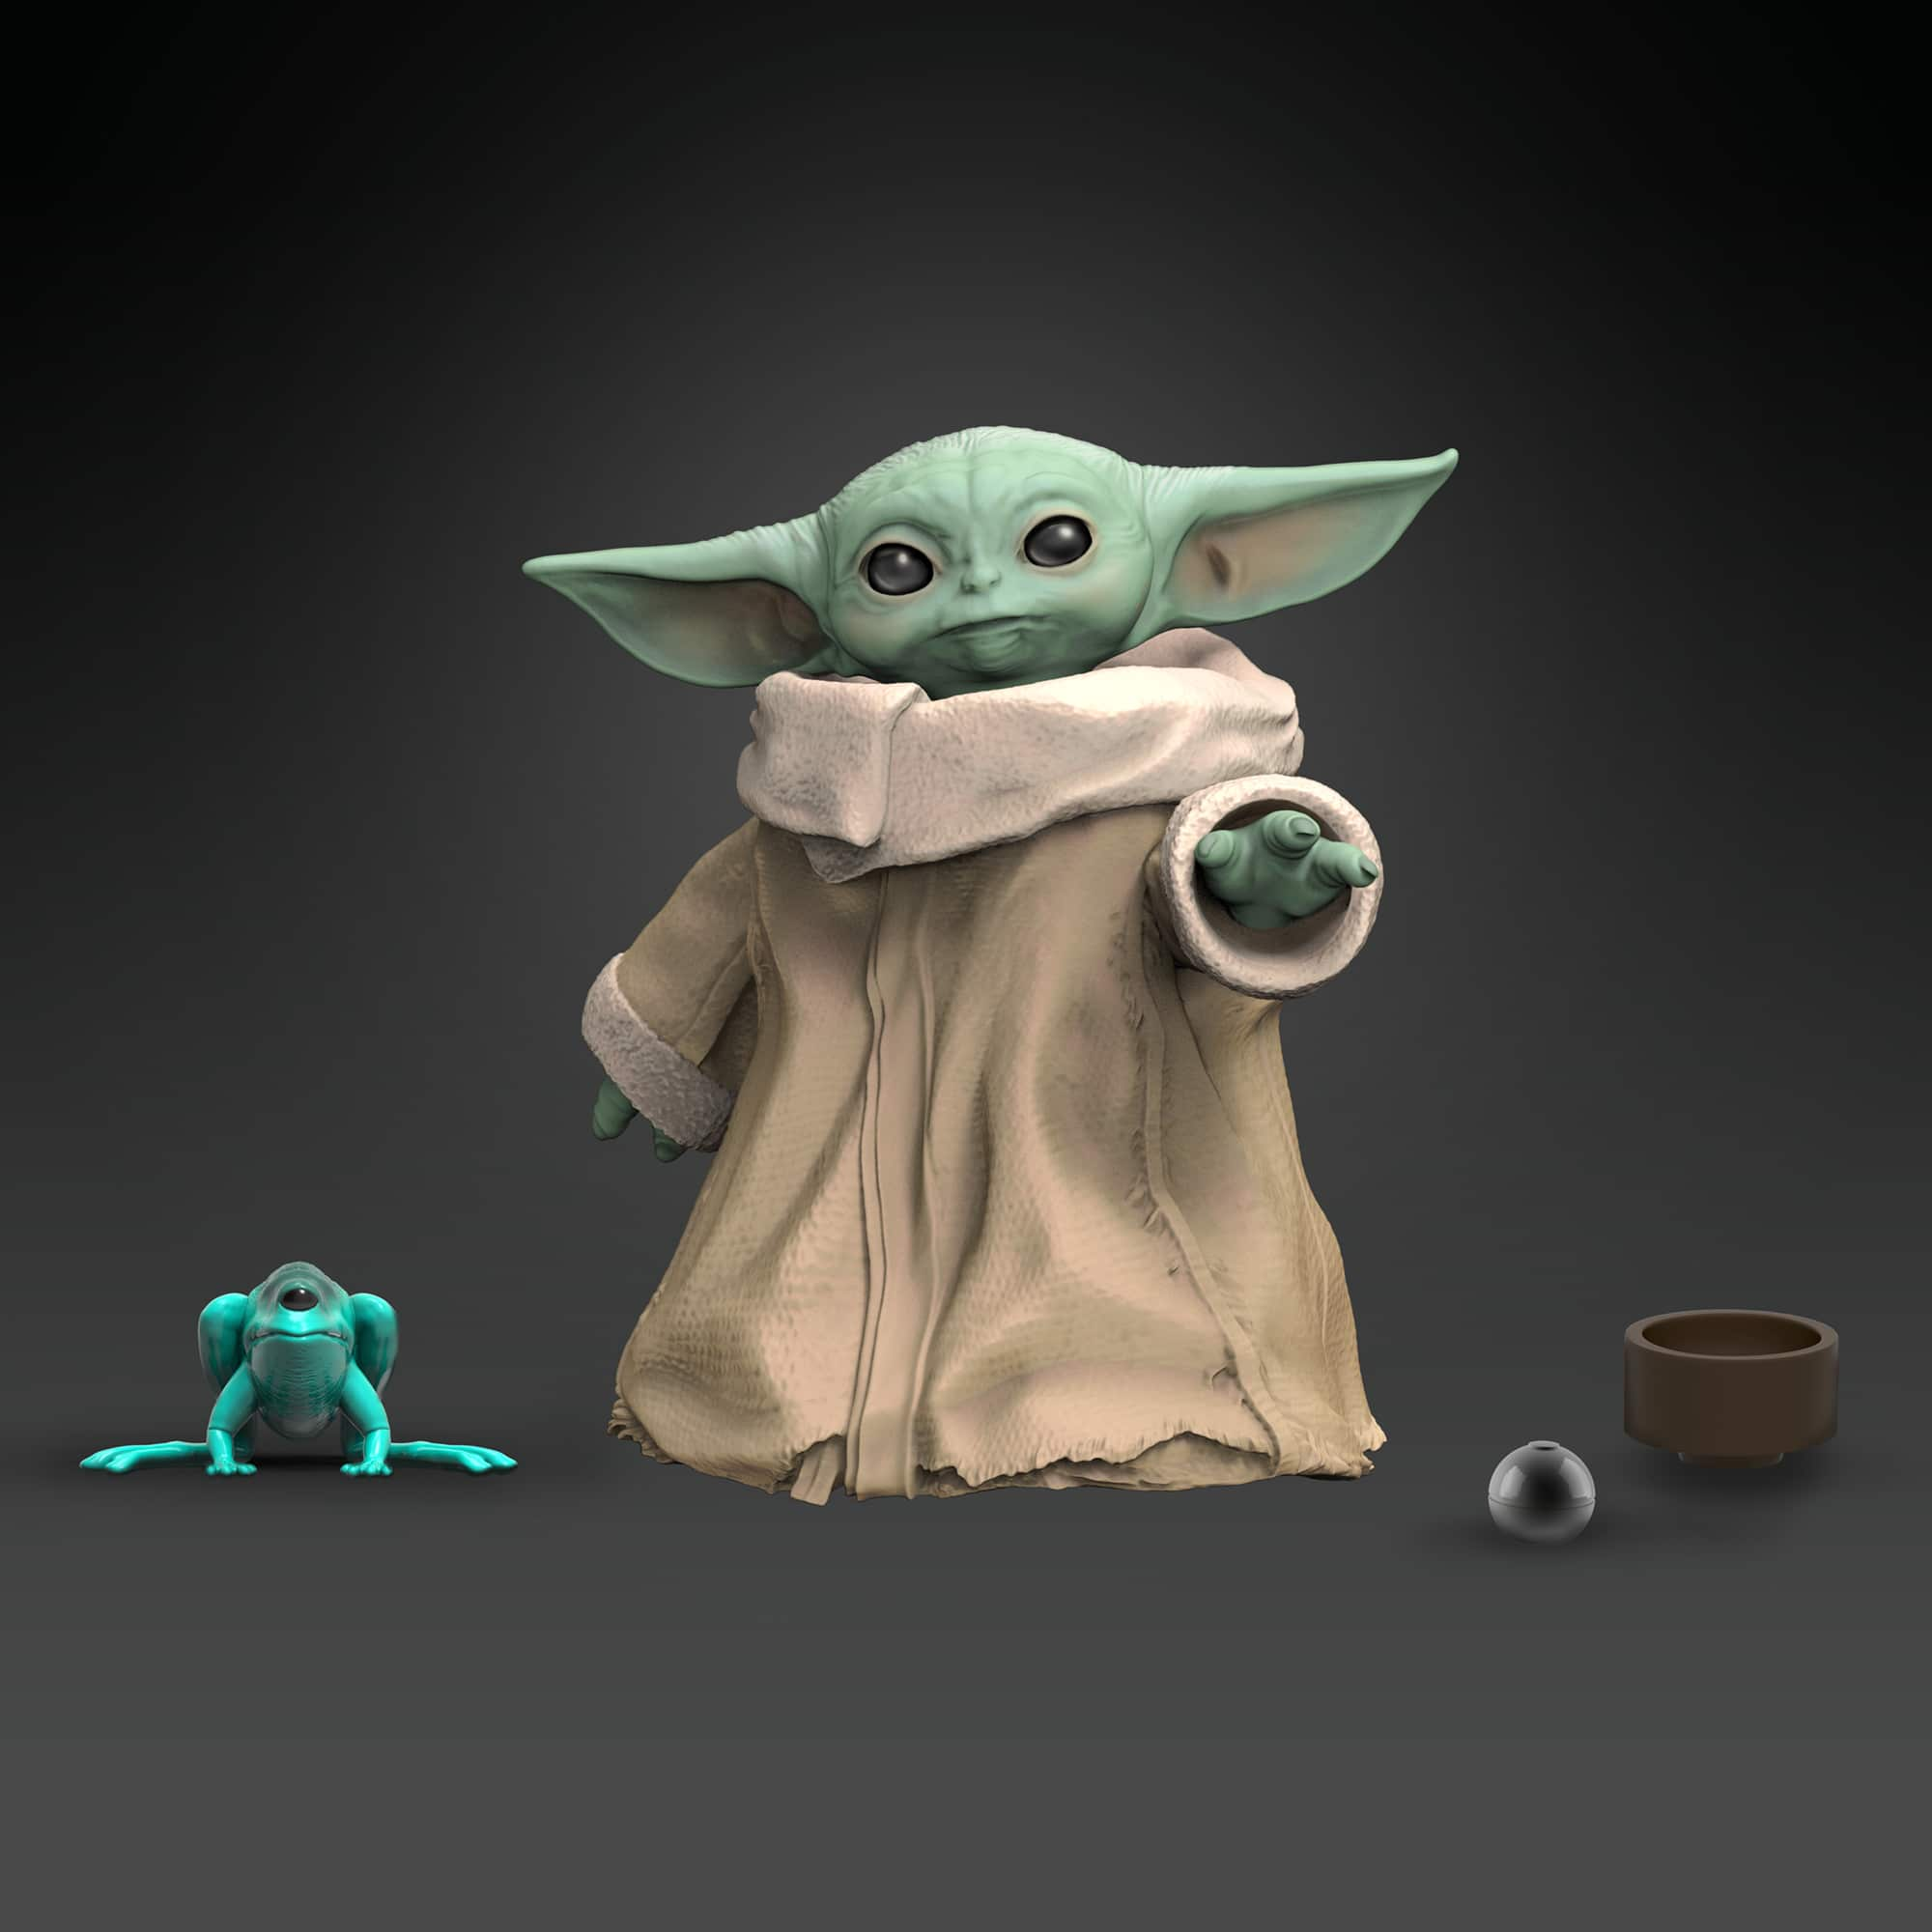 Hasbro's first Baby Yoda toys are here and they're freaking adorable 11